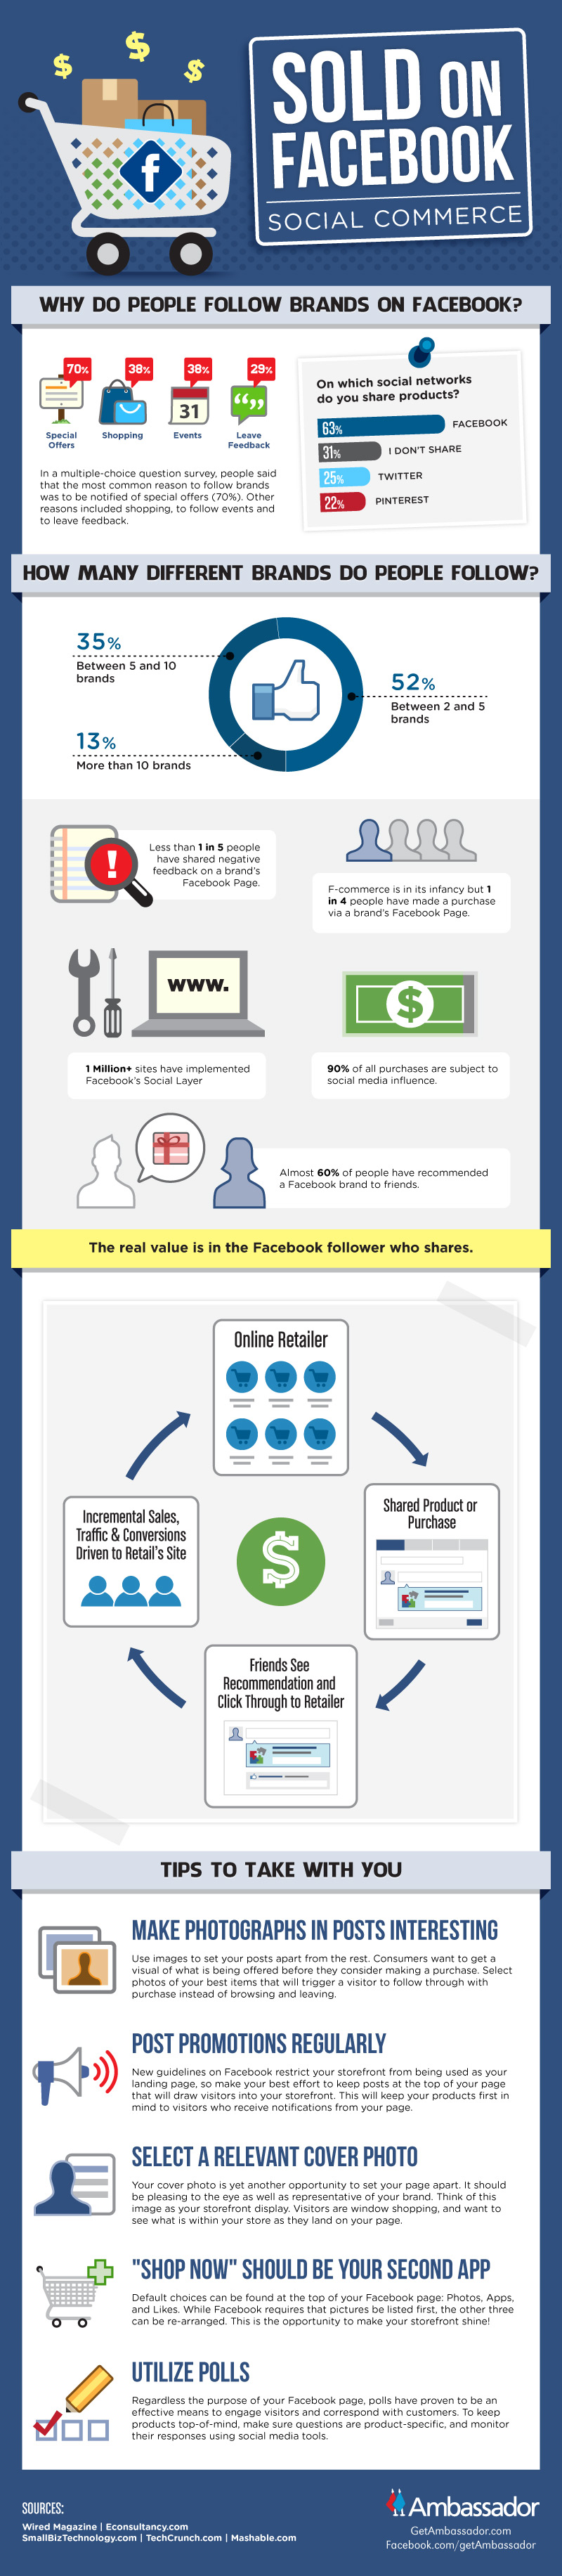 Infographic on facebook